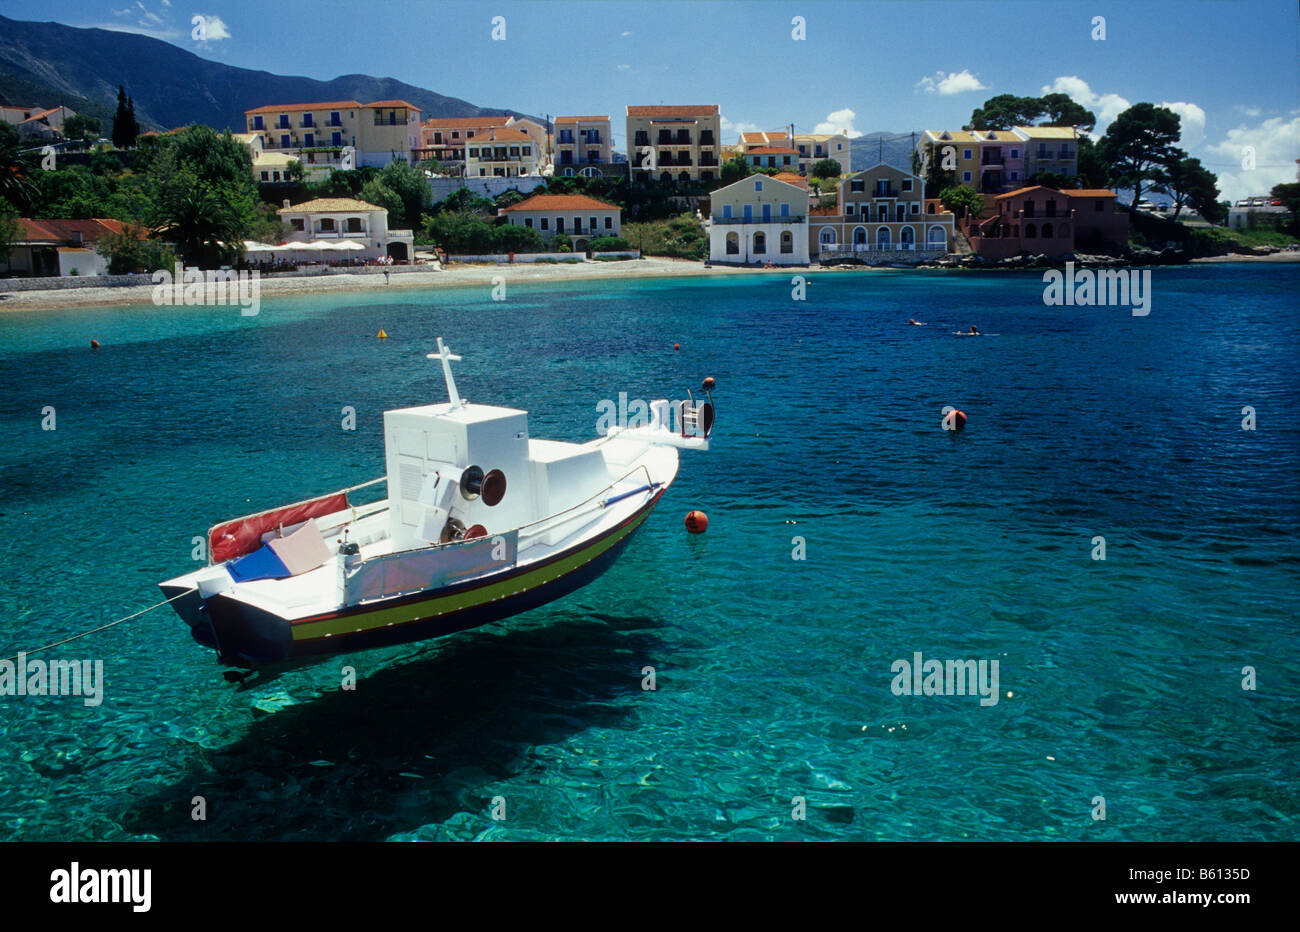 Boat in the harbour of Assos, Island of Kefalonia, Greece, Europe - Stock Image